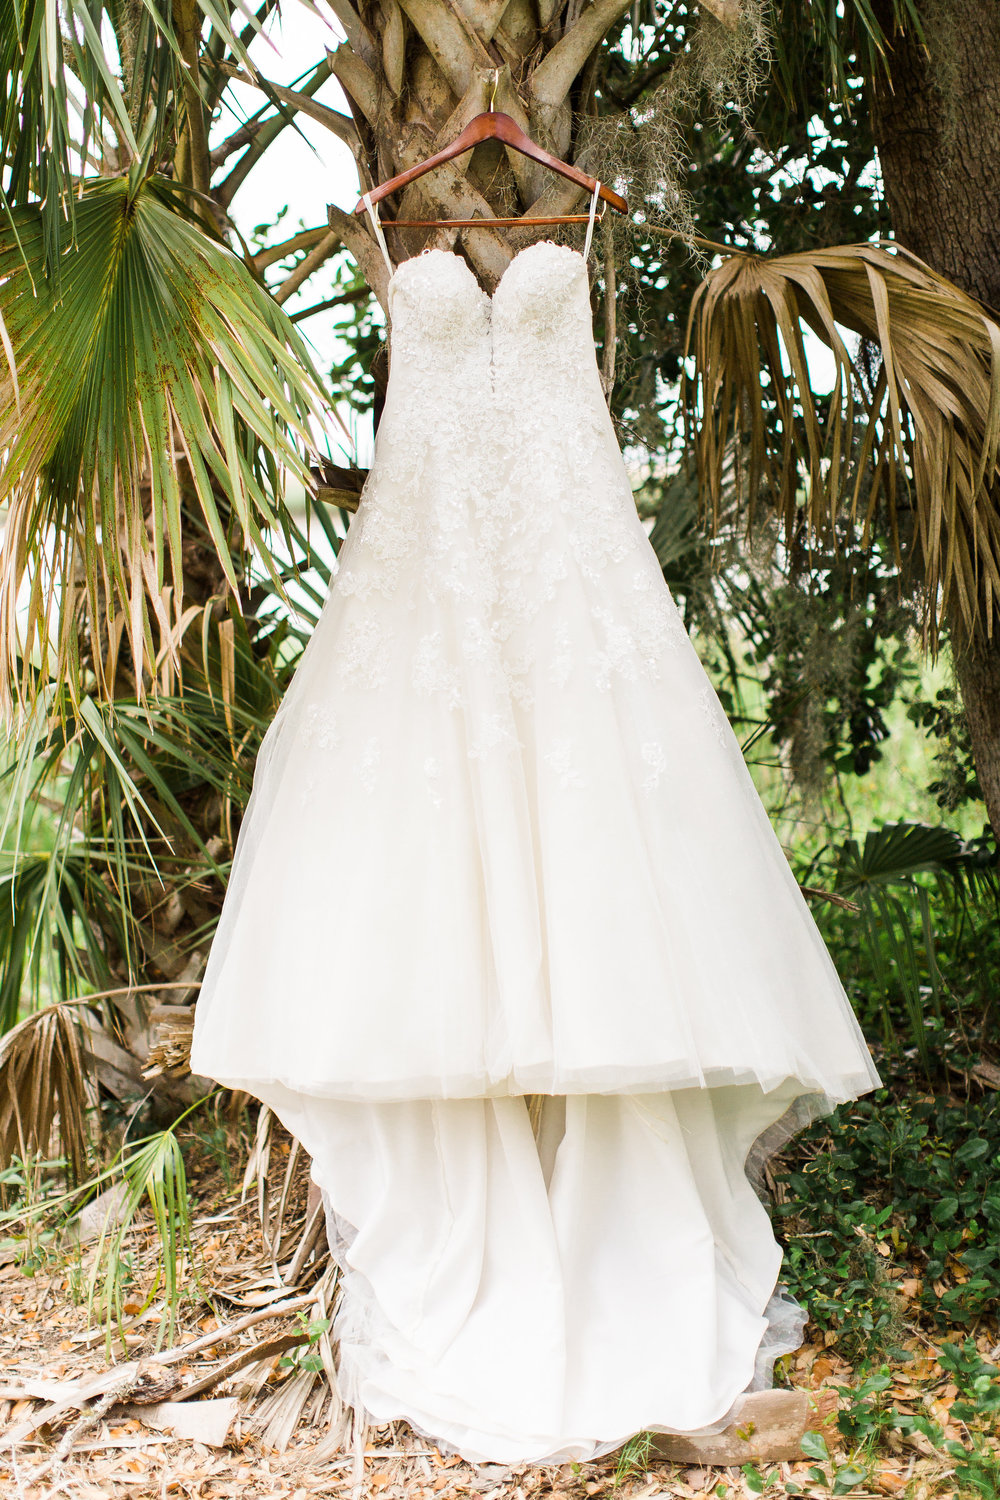 savannah-bridal-shop-i-and-b-couple-gretchen-and-alex-fun-and-unique-tropical-wedding-at-captains-bluff-st-simons-island-wedding-marianne-lucille-photography-1.jpg